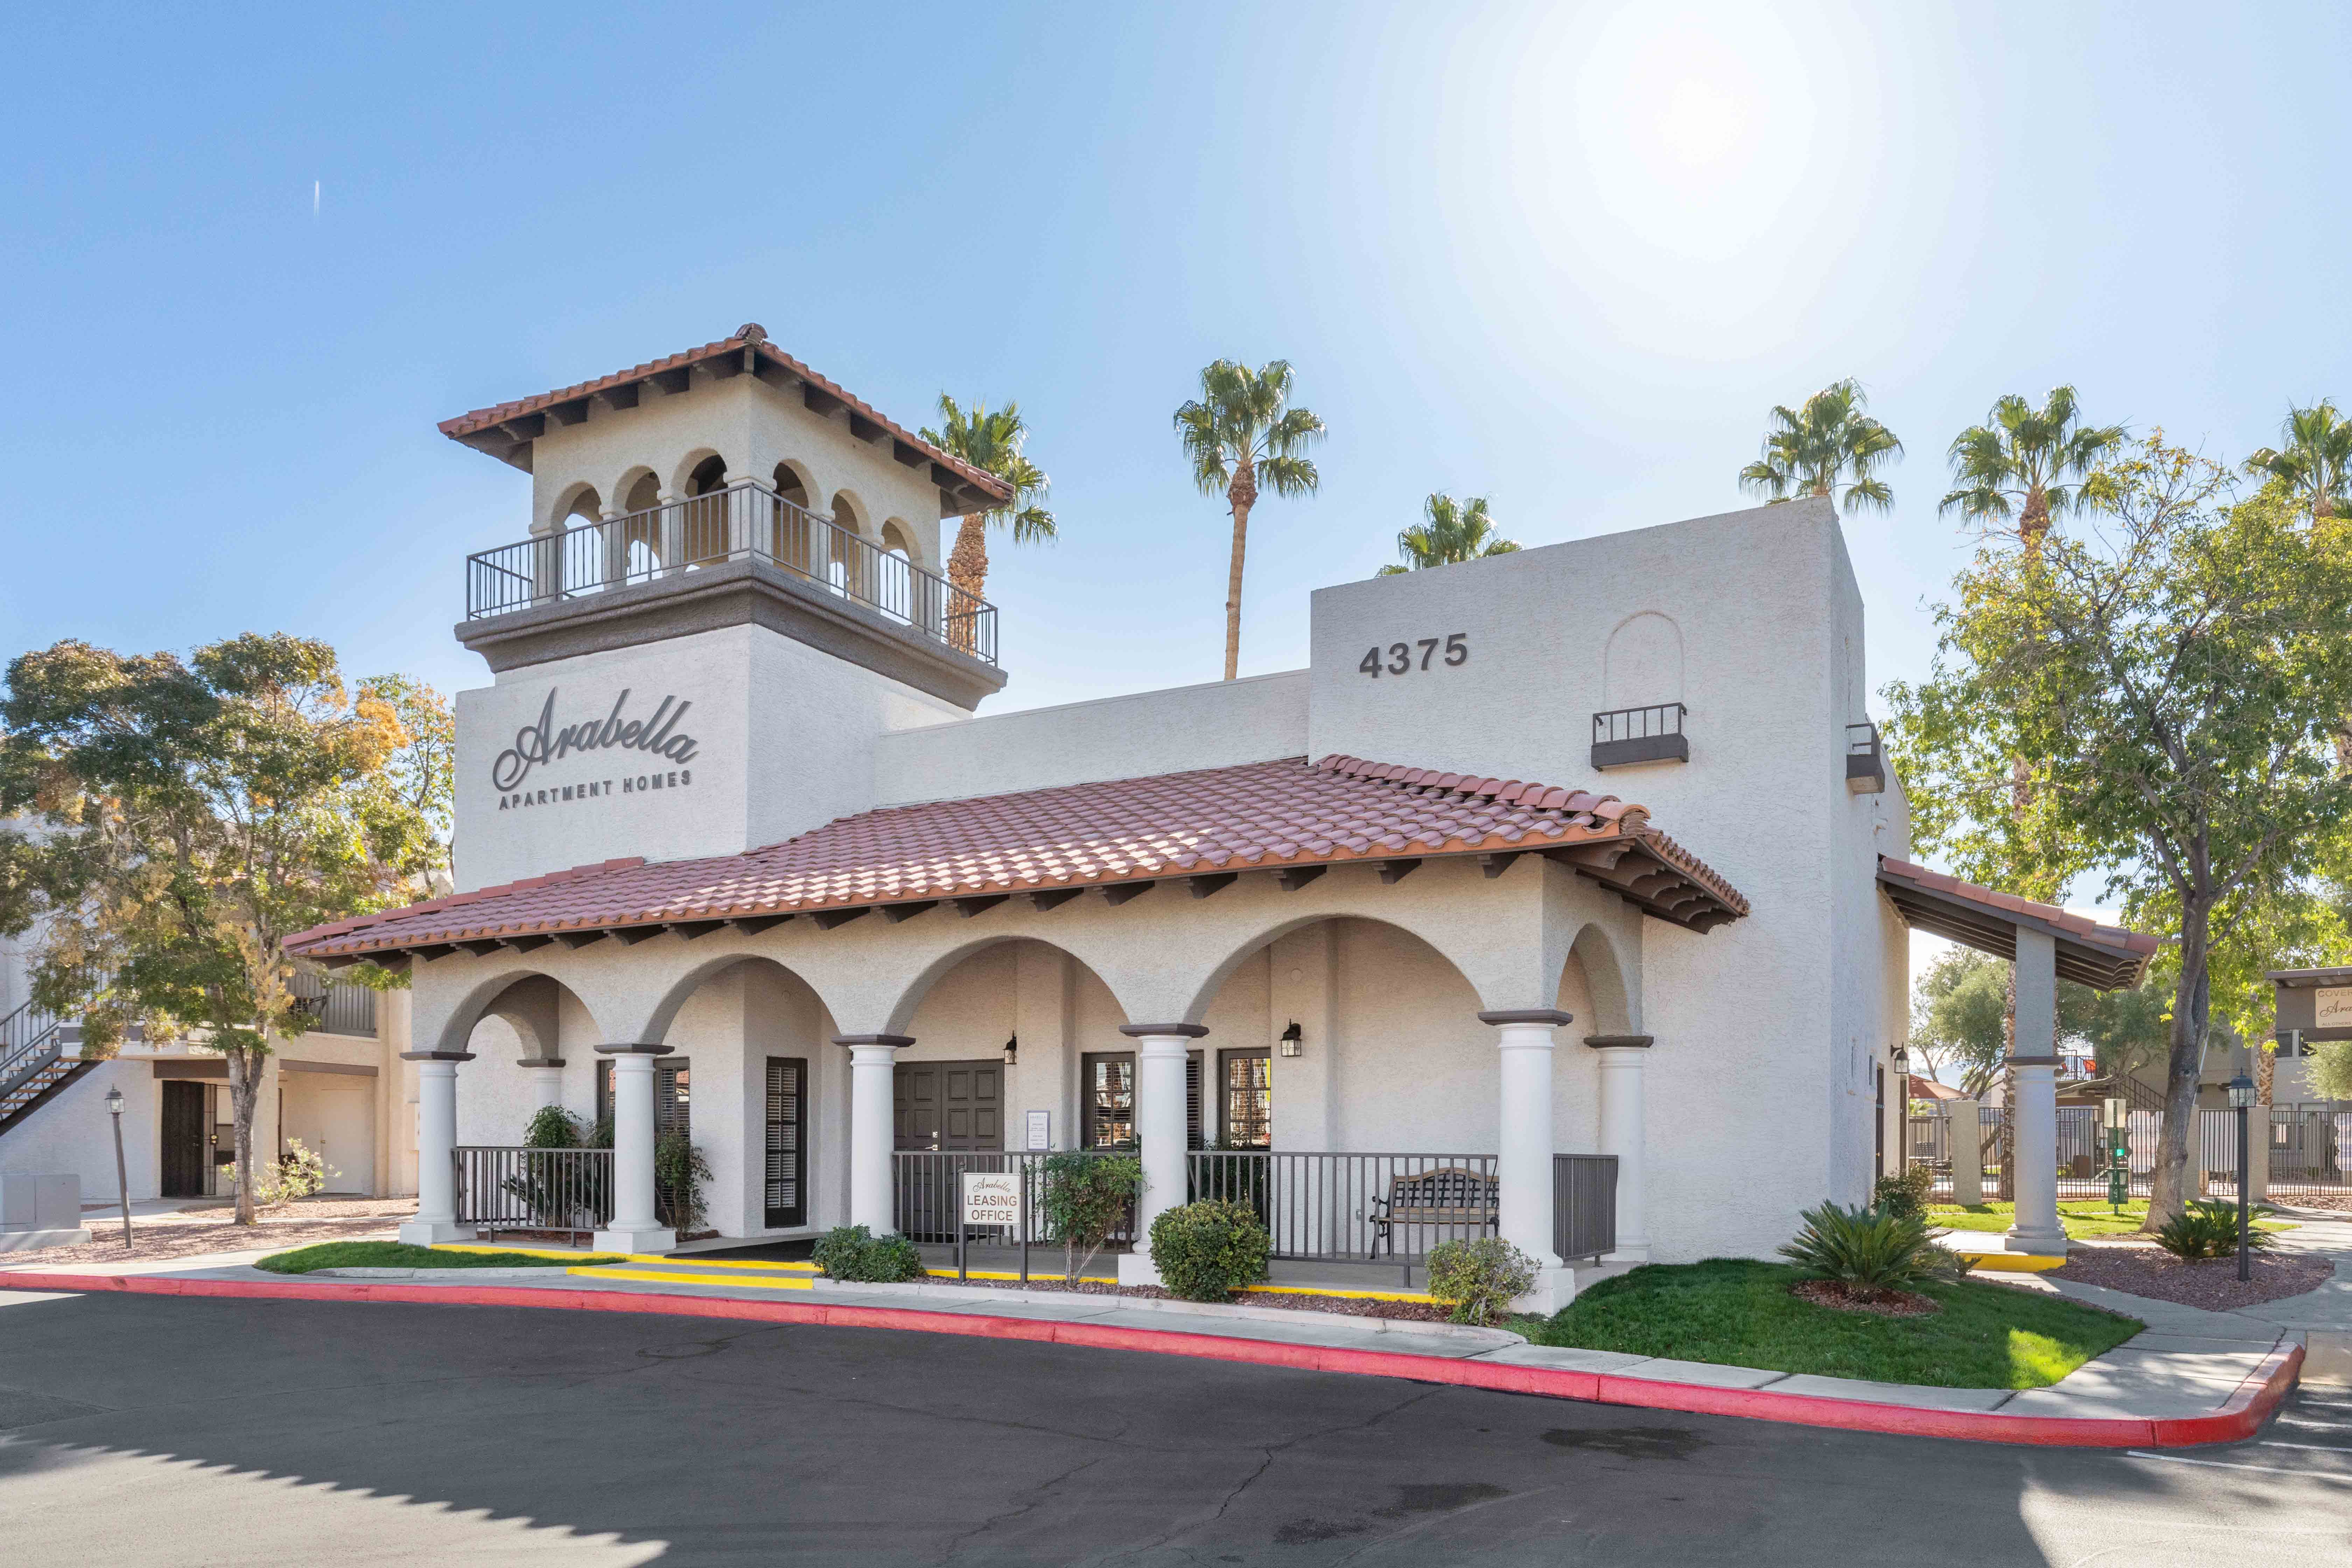 4375 East Sunset Road - 1520USD / month